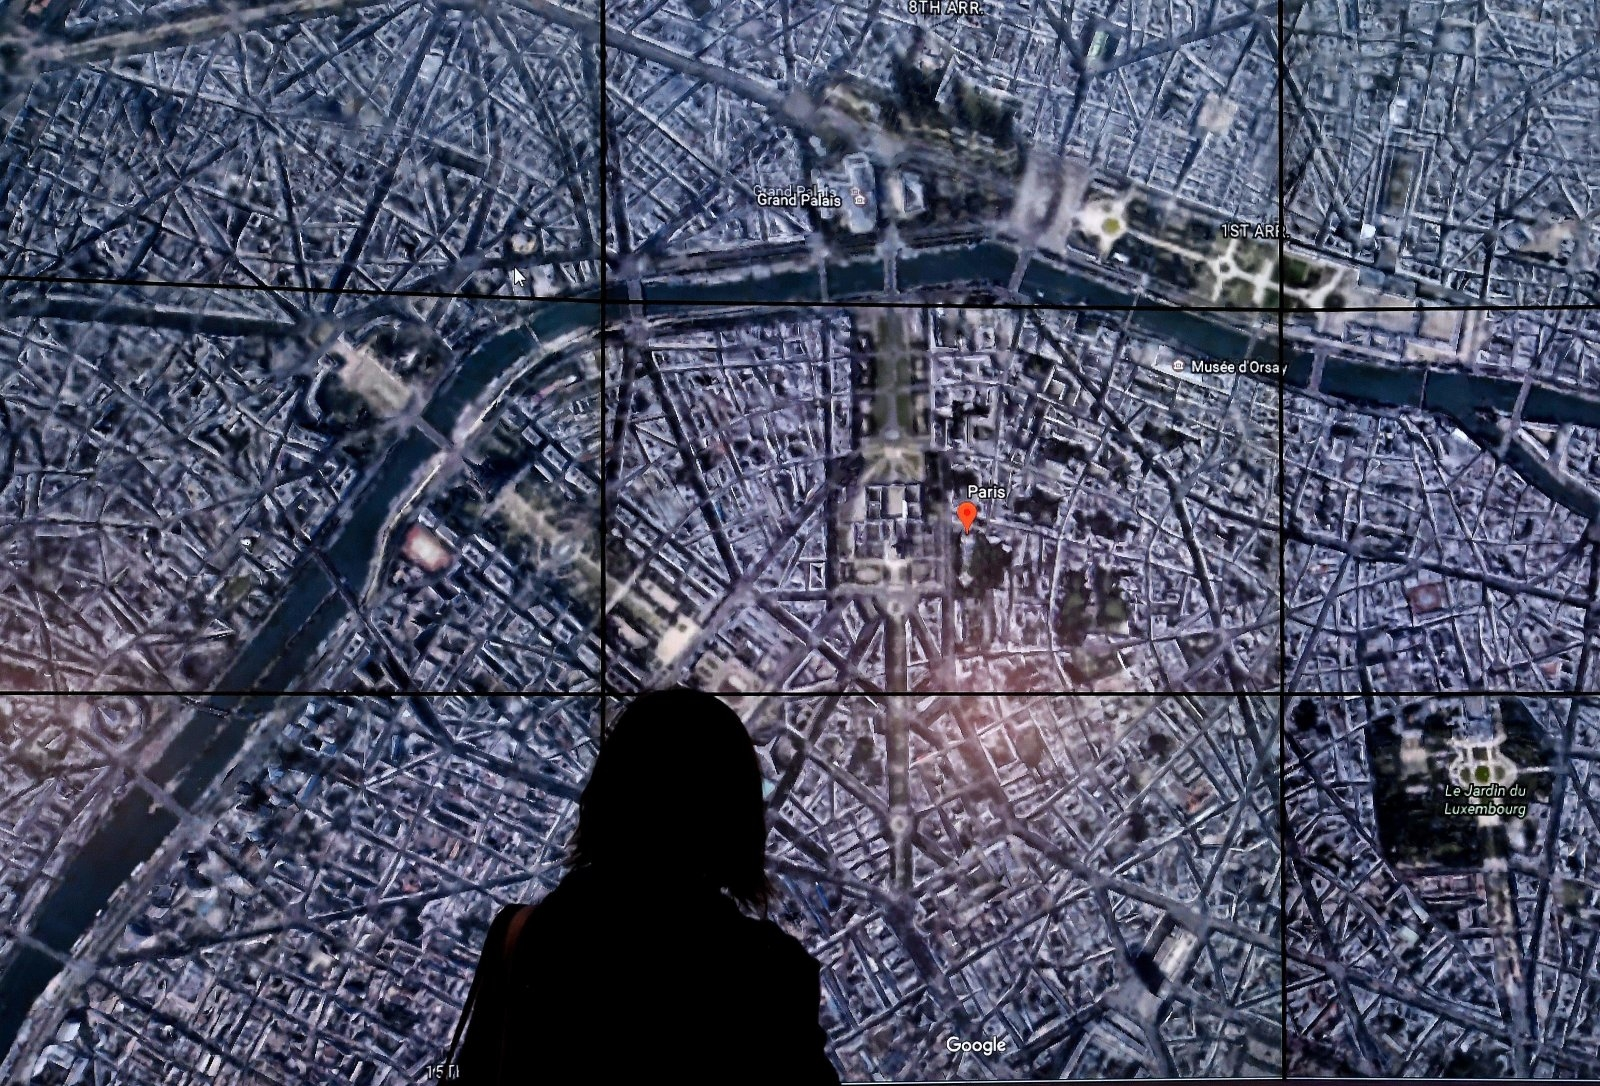 People look at a Google Earth map of Paris,France on a screen as Google Earth unveils the revamped version of the application April 18, 2017 at a event at New York's Whitney Museum of Art.Google on Tuesday launched a re-imagined version of its free Earth mapping service, weaving in storytelling and artificial intelligence and freeing it from apps. / AFP PHOTO / TIMOTHY A. CLARY        (Photo credit should read TIMOTHY A. CLARY/AFP/Getty Images)